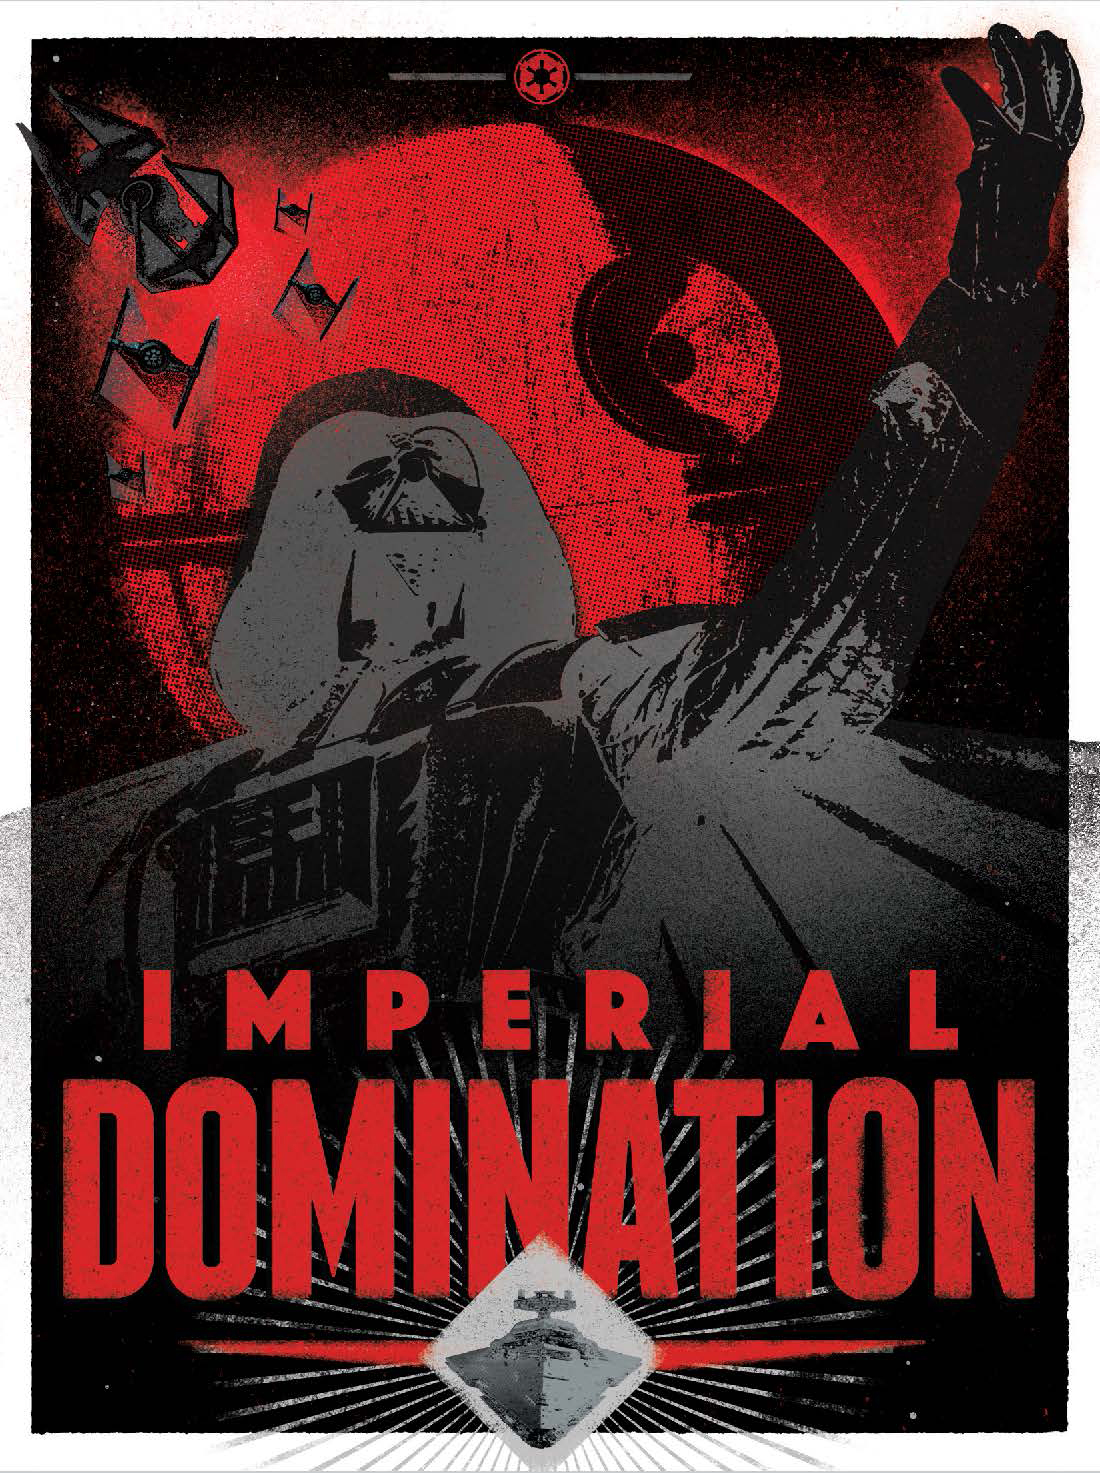 Imperial Domination